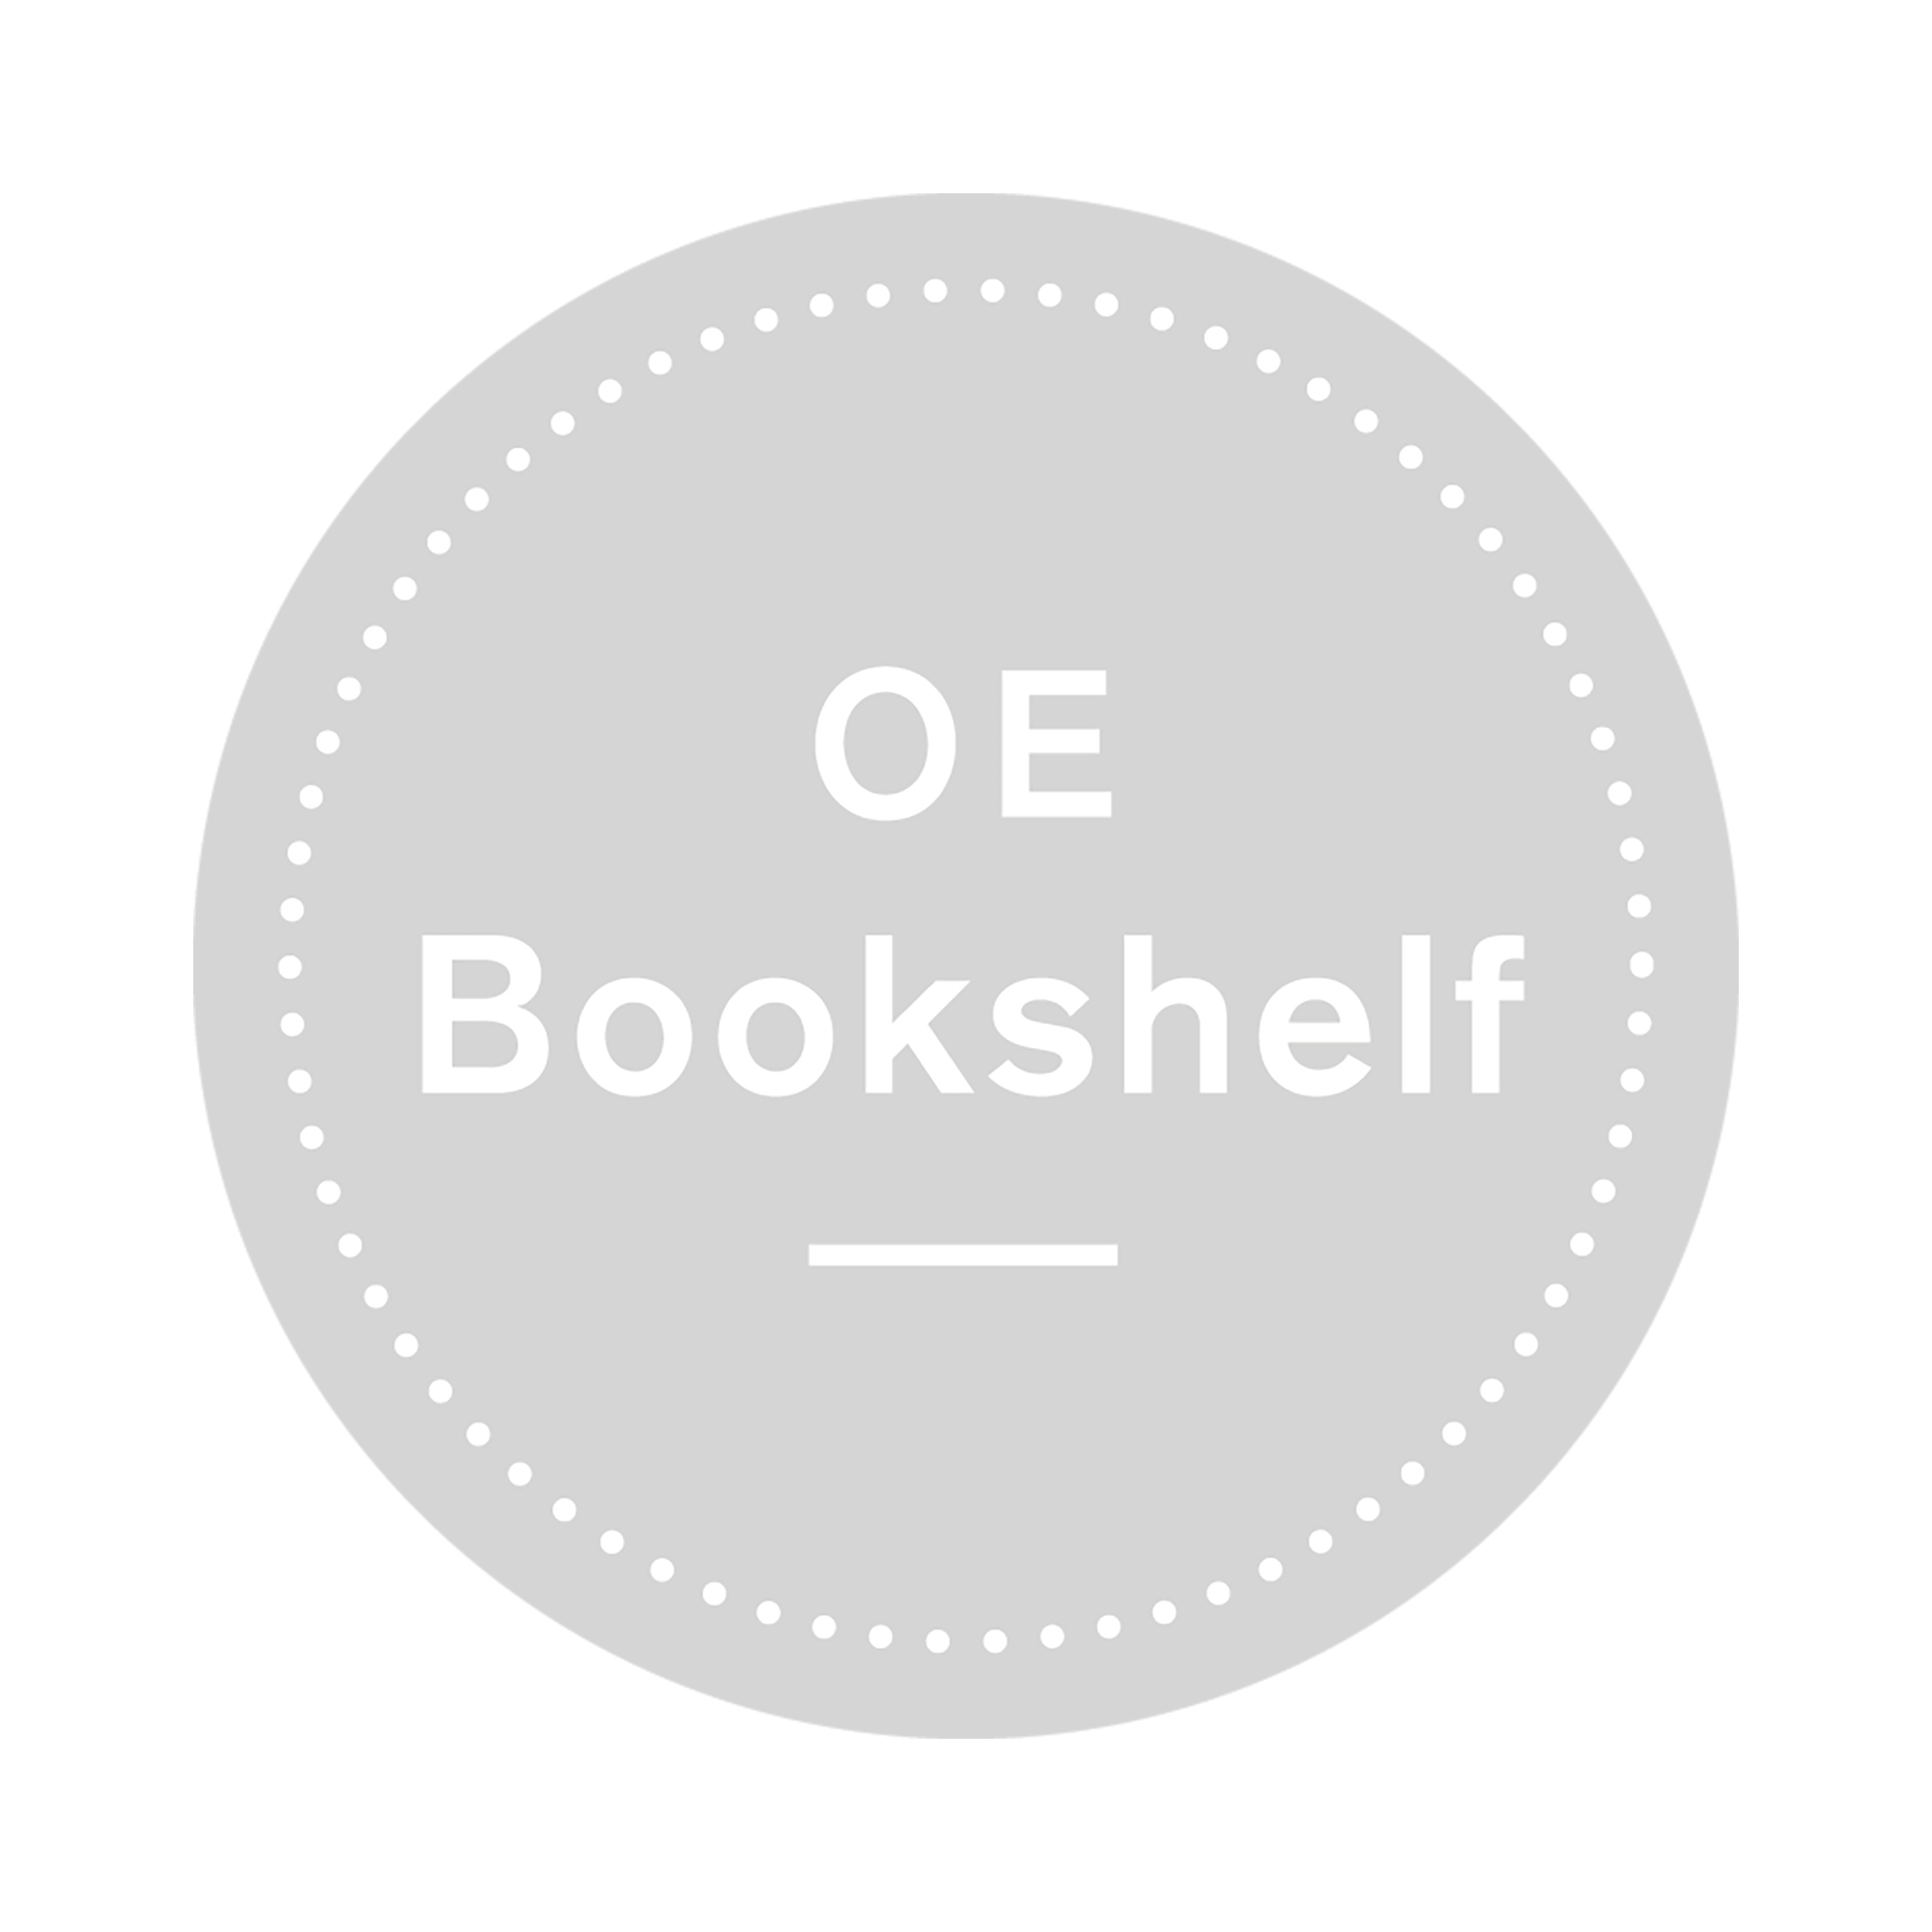 OE Bookshelf Subscription